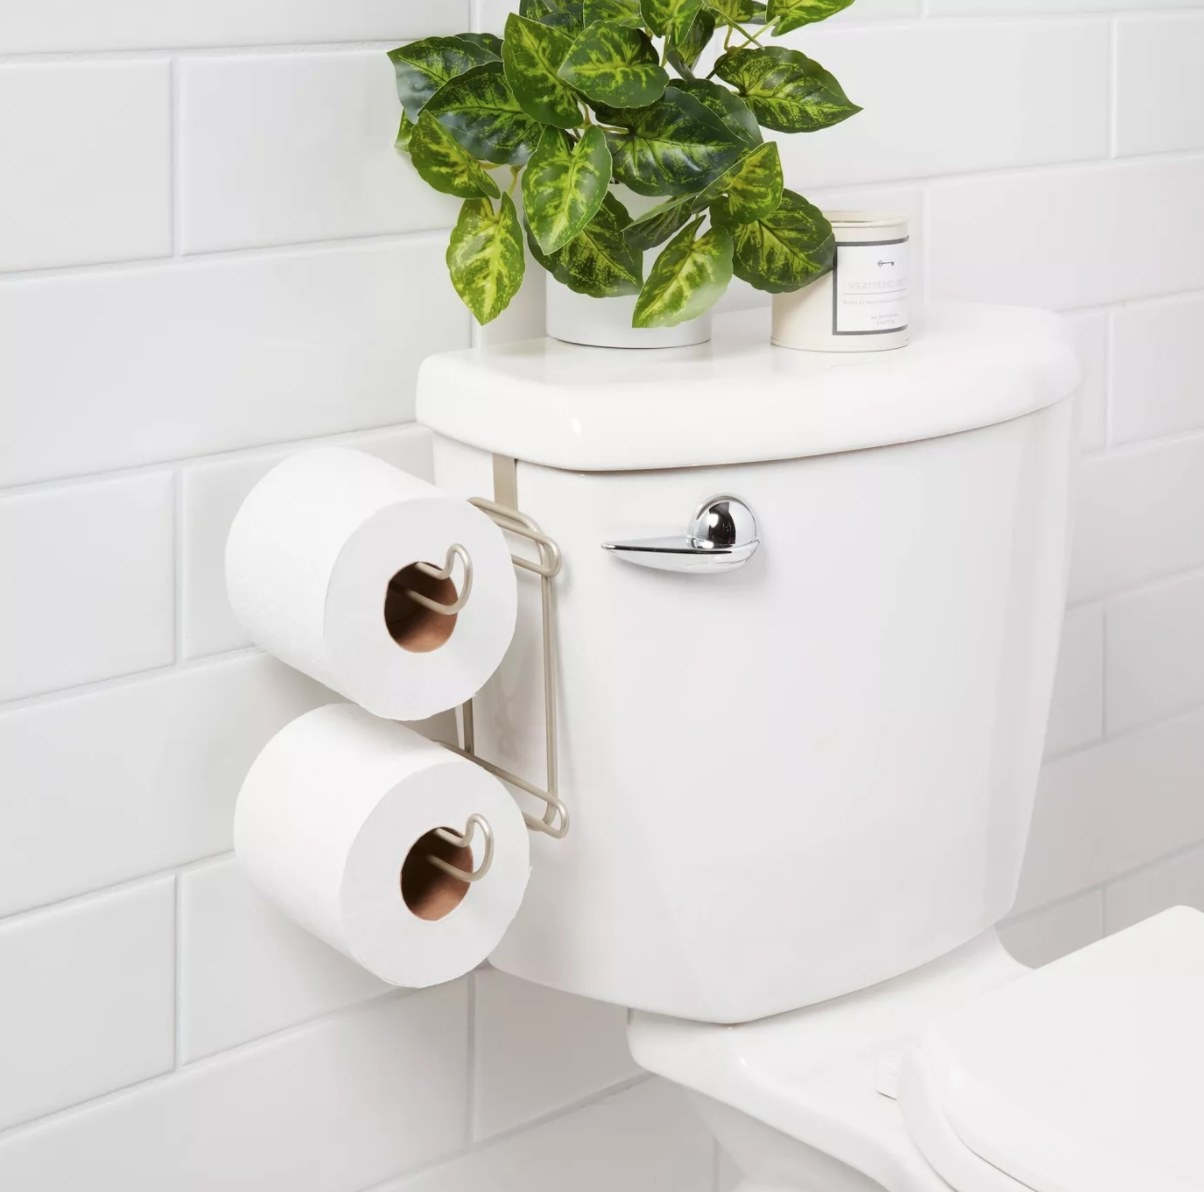 A metal two-roll toilet paper holder hooked onto the tank of a toilet